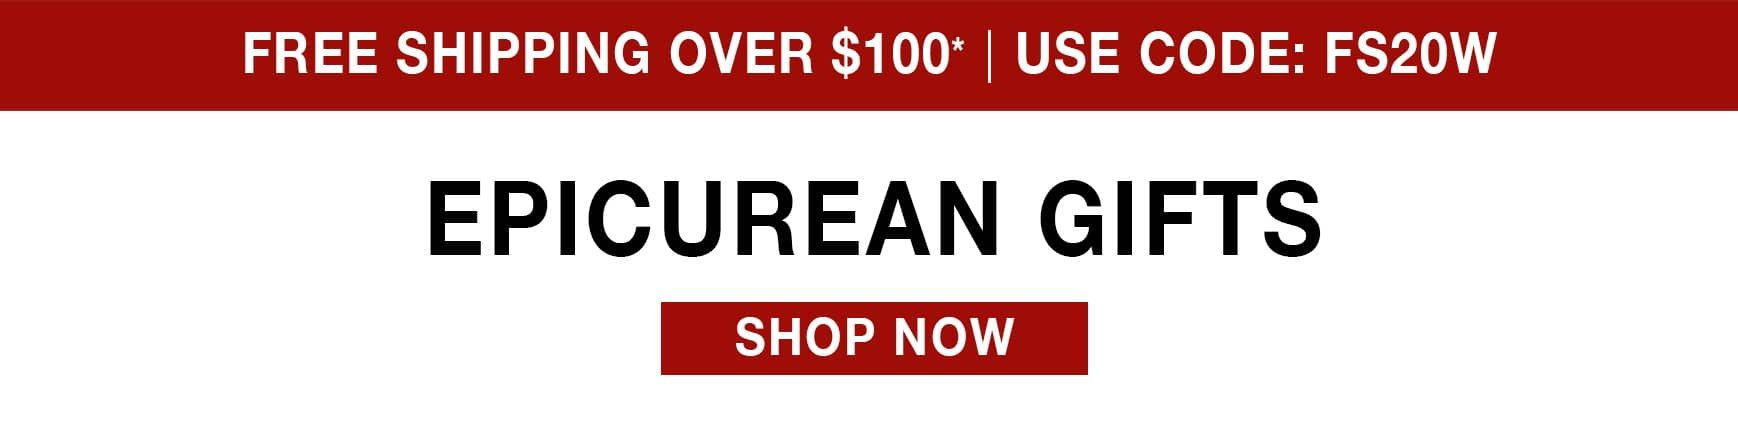 Epicurean Gifts - Free Shipping Over $100 use code FS20W